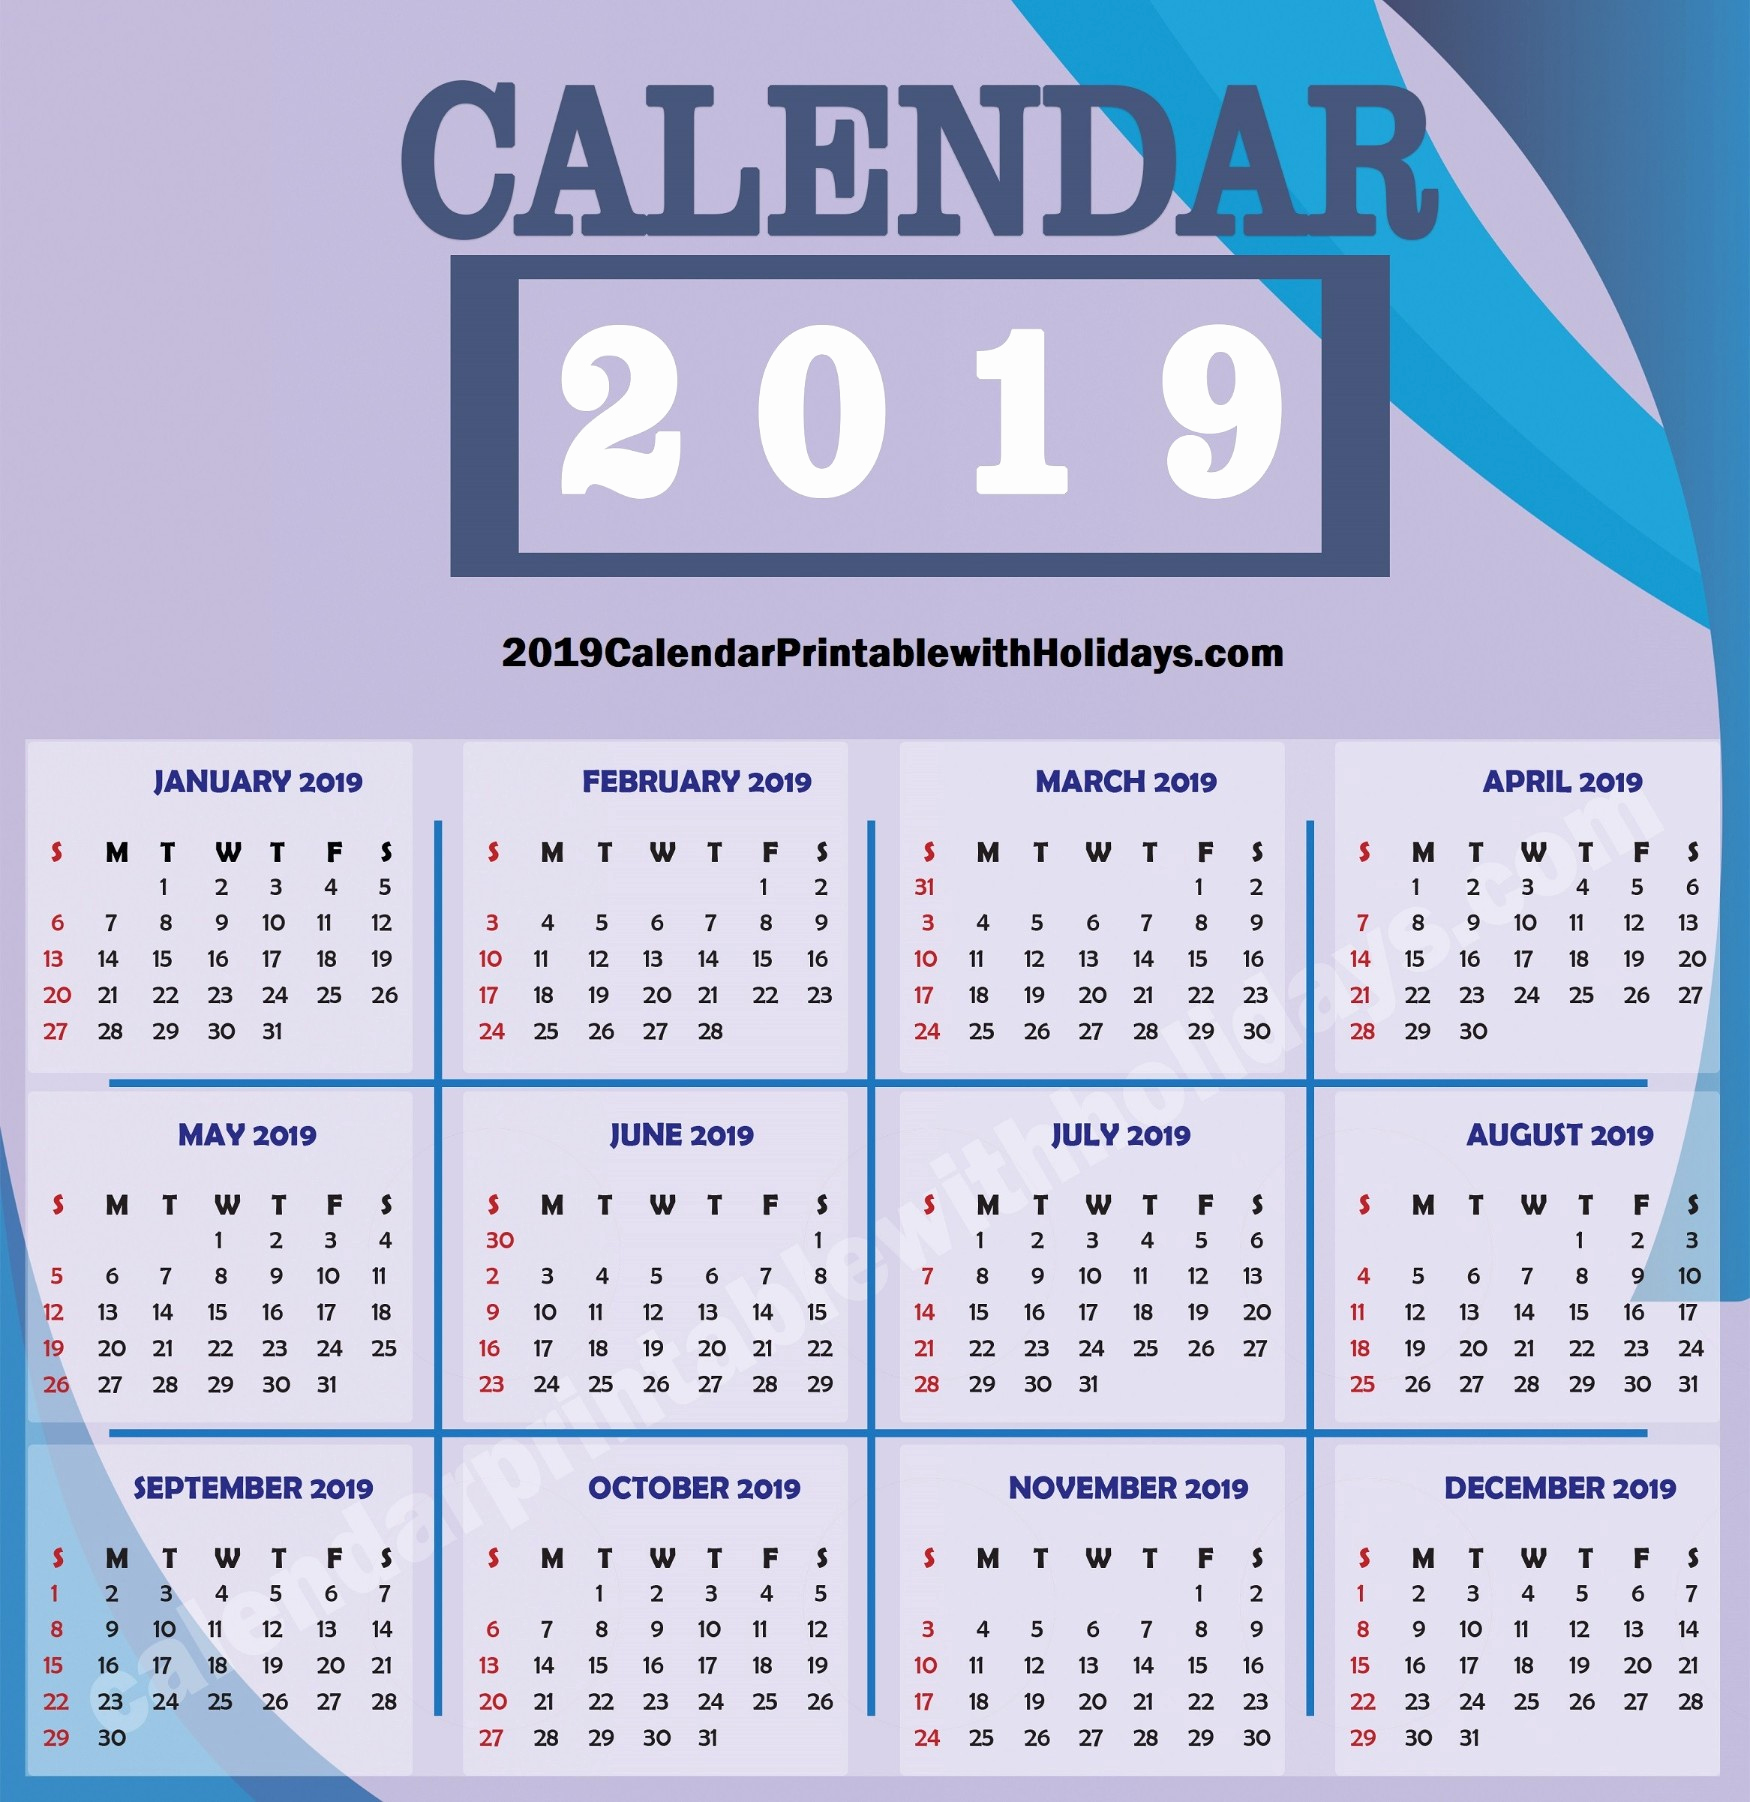 2019 Calendar Template Word Awesome 2019 Calendar Printable Template with Holidays Pdf Word